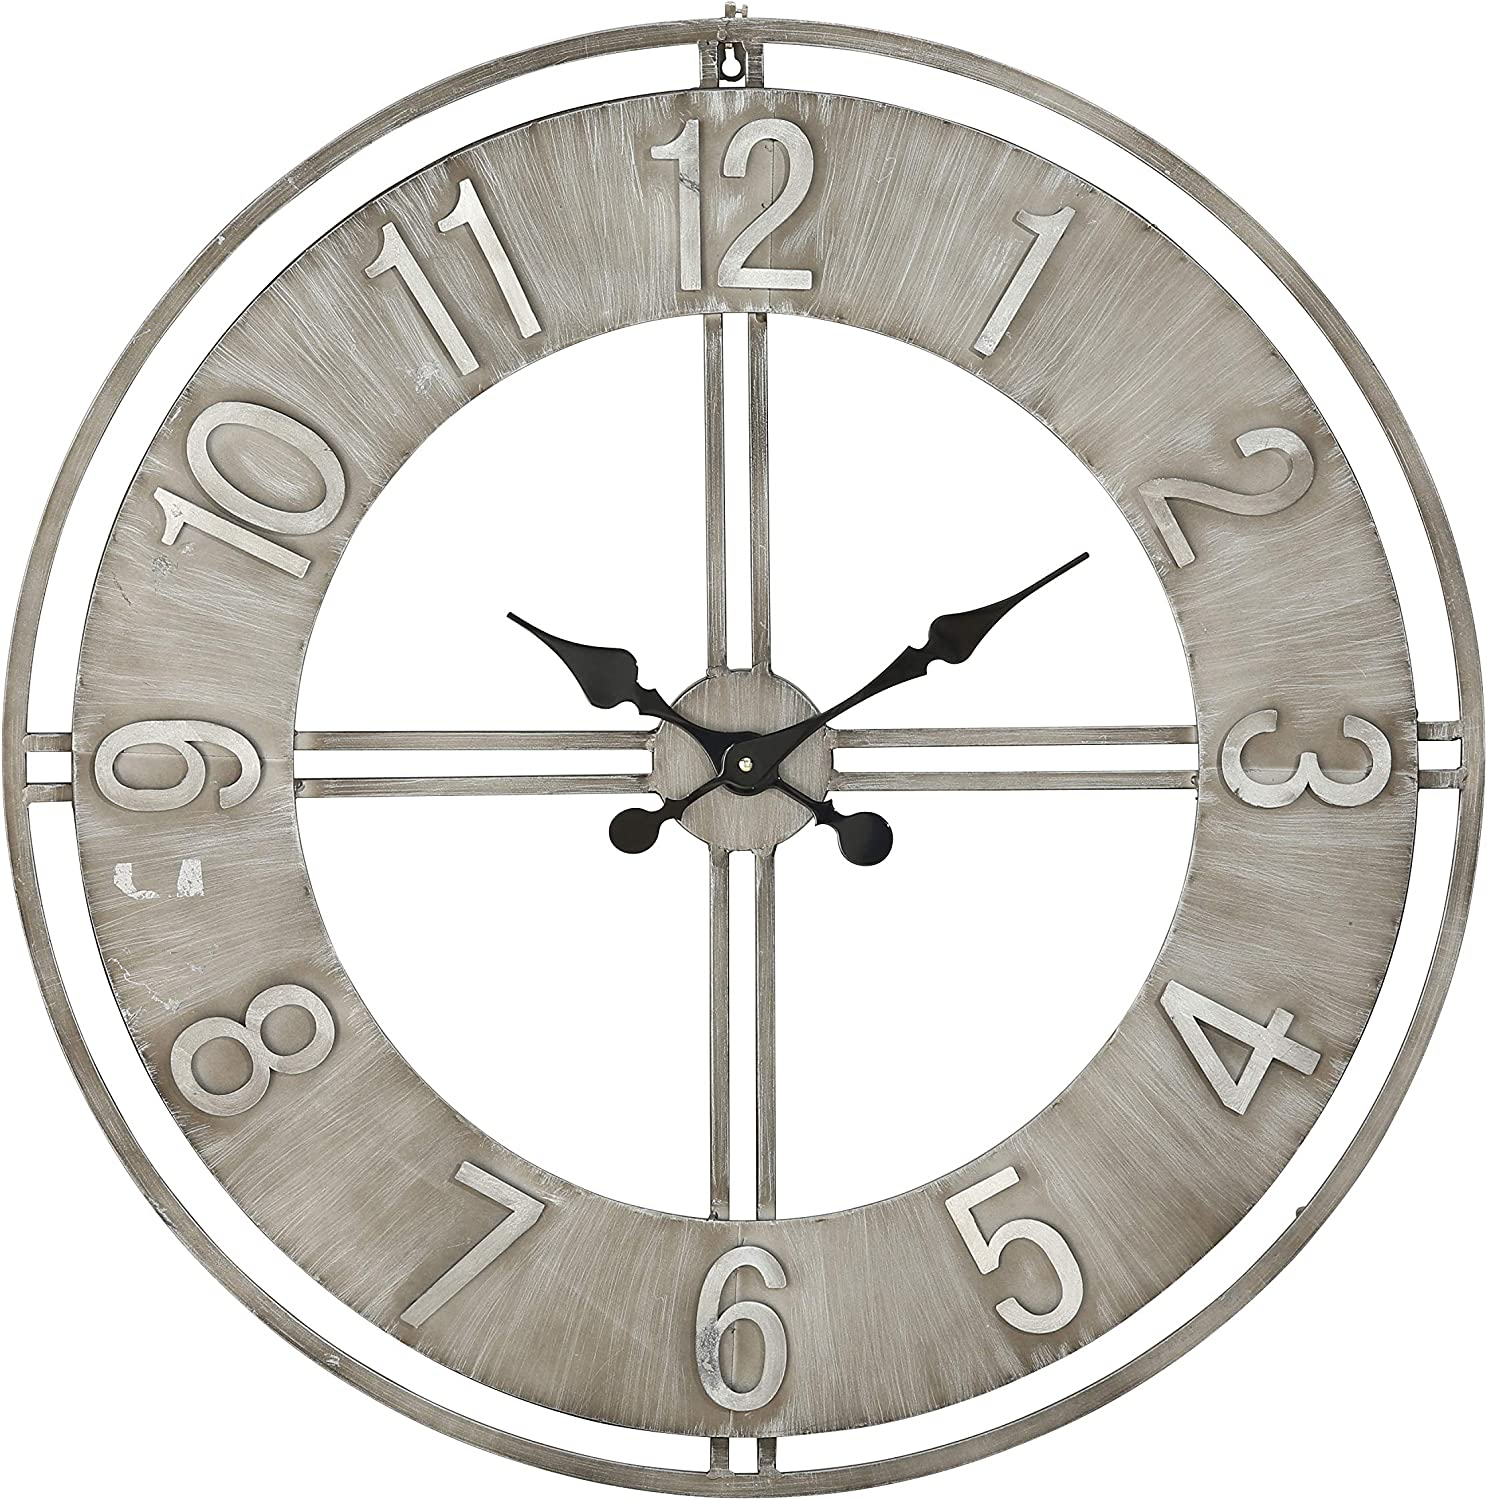 Whole House Worlds Industrial Chic Analog Clock, Distressed Finish, Metal, Quartz Movement, Over 2.5 Feet Diameter (30.75 Inches) 1 AA Battery (Not Included) Loft Living Collection